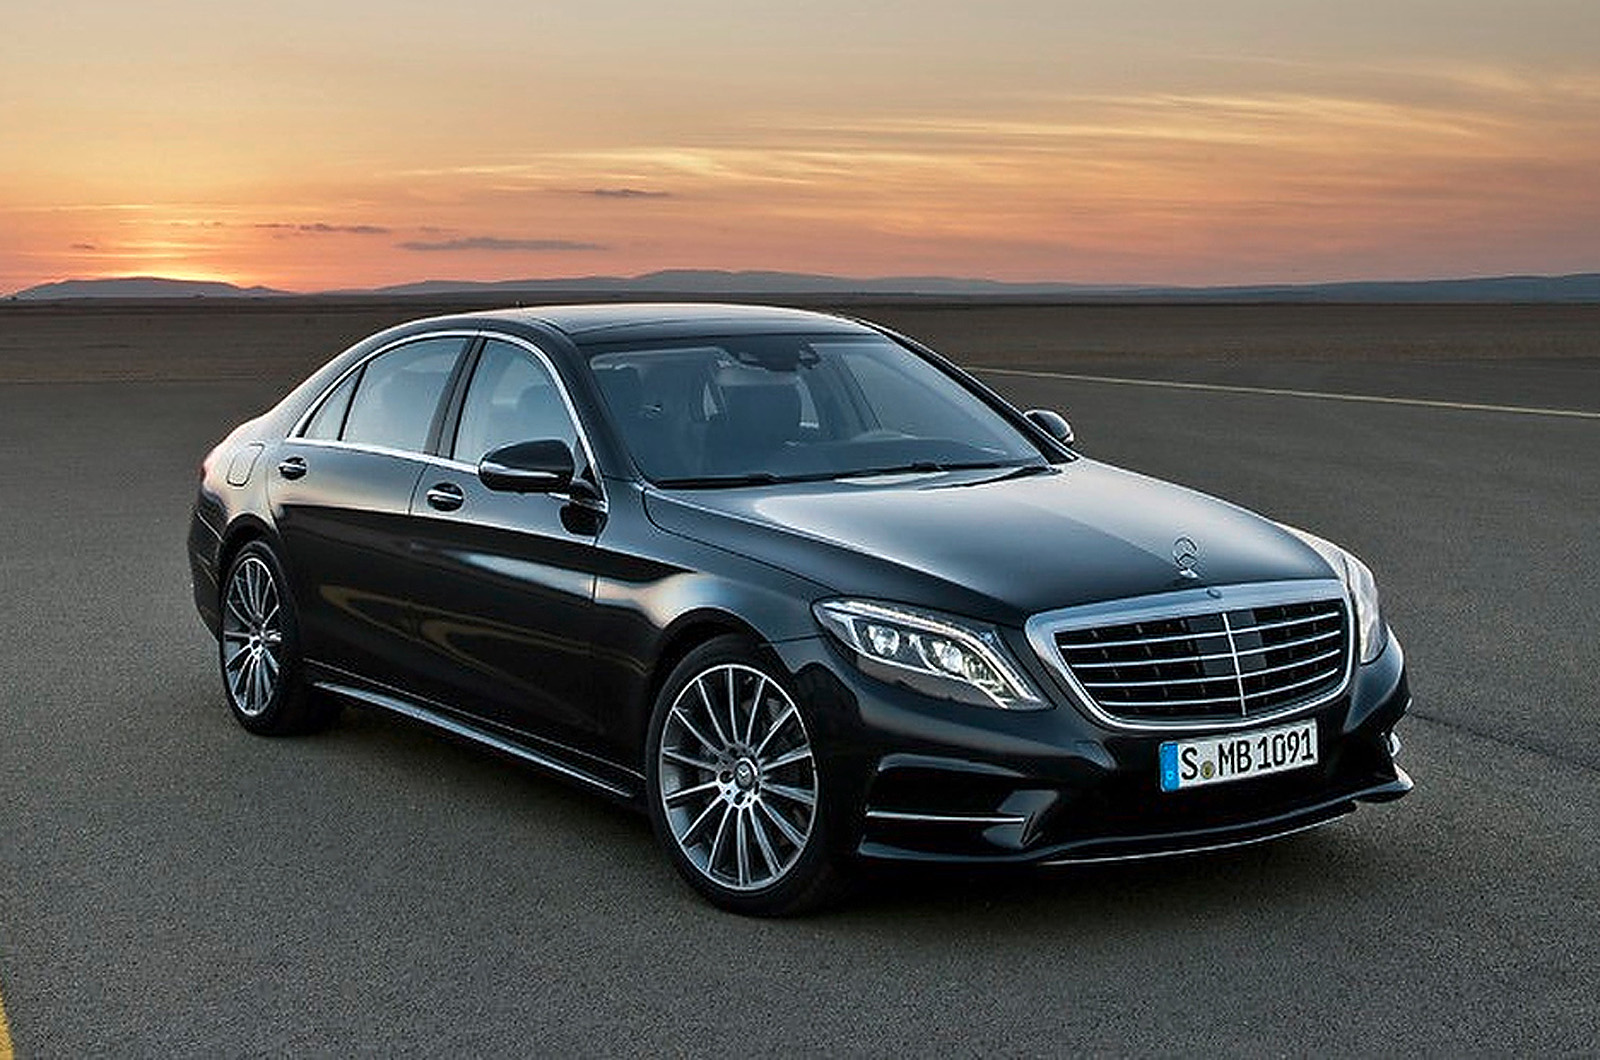 uk pricing for new mercedes benz s class revealed. Black Bedroom Furniture Sets. Home Design Ideas